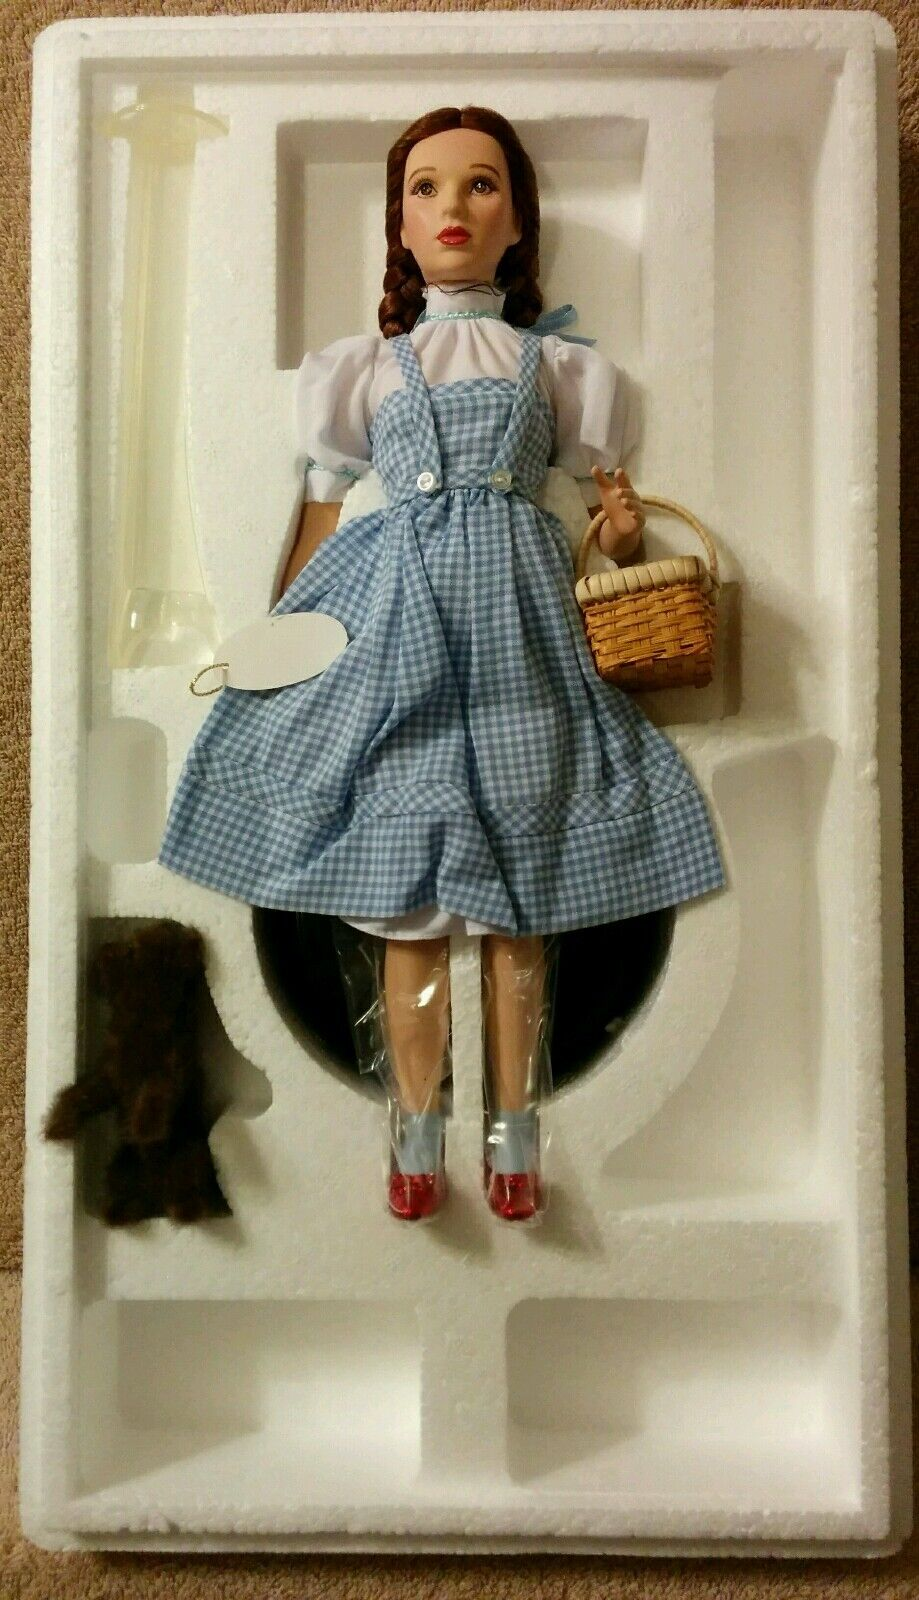 DGoldthy, The Wizard of Oz Porcelain Doll Collection, NRFB 2000